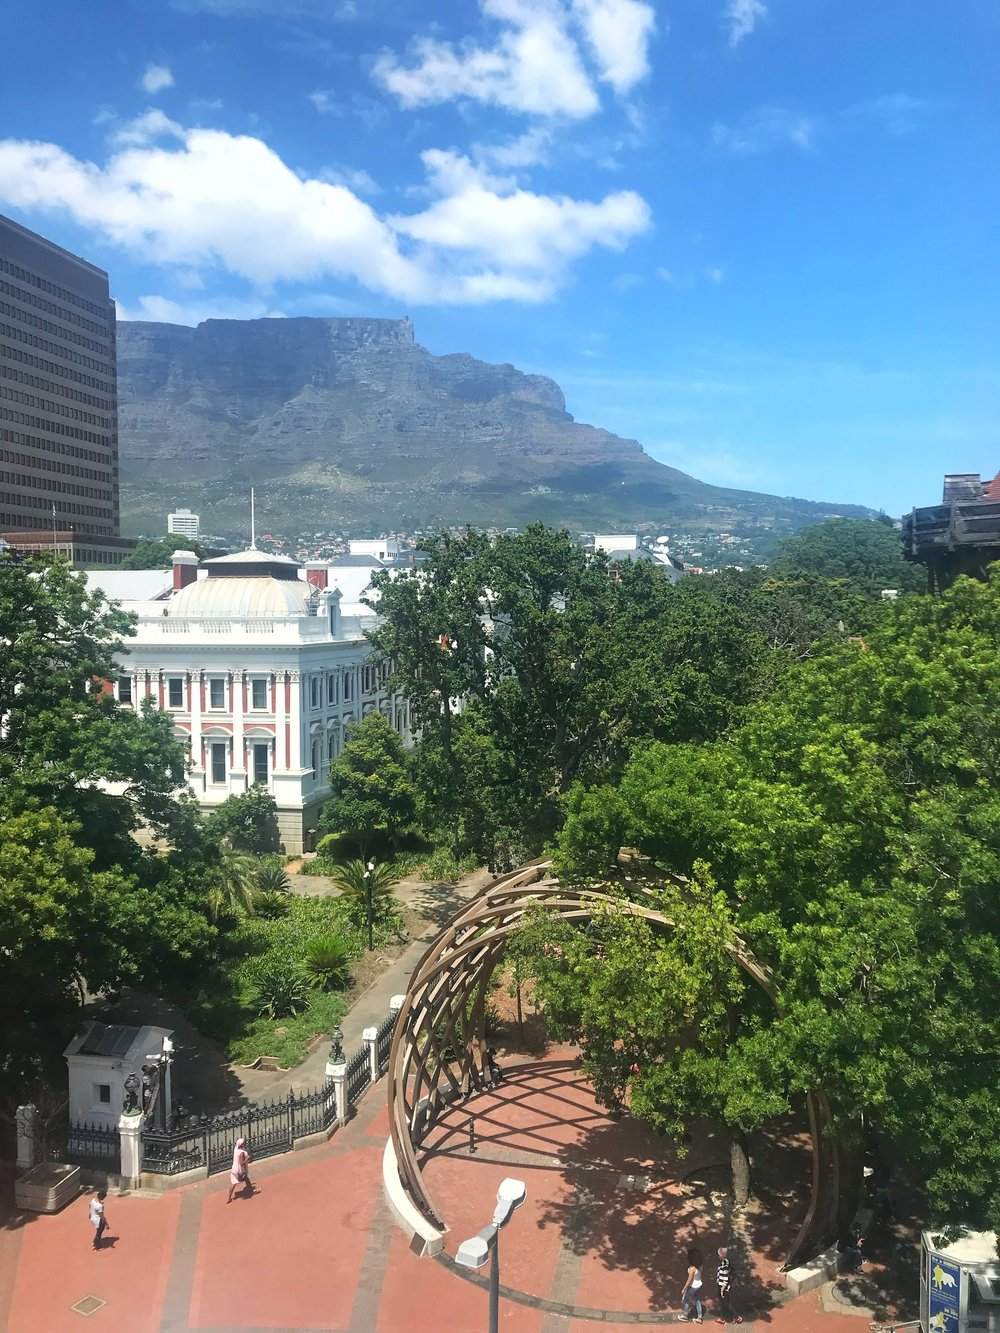 Our Hotel Room View - I loved the view of our hotel room. On one end we could see the street still full of Christmas and New Year's decorations, on the other side we had this view - Table Mountain and a park. One day I was looking out the window and at the park I saw an albino squirrel being chased by a regular squirrel. I've never seen an albino squirrel before, so day made!